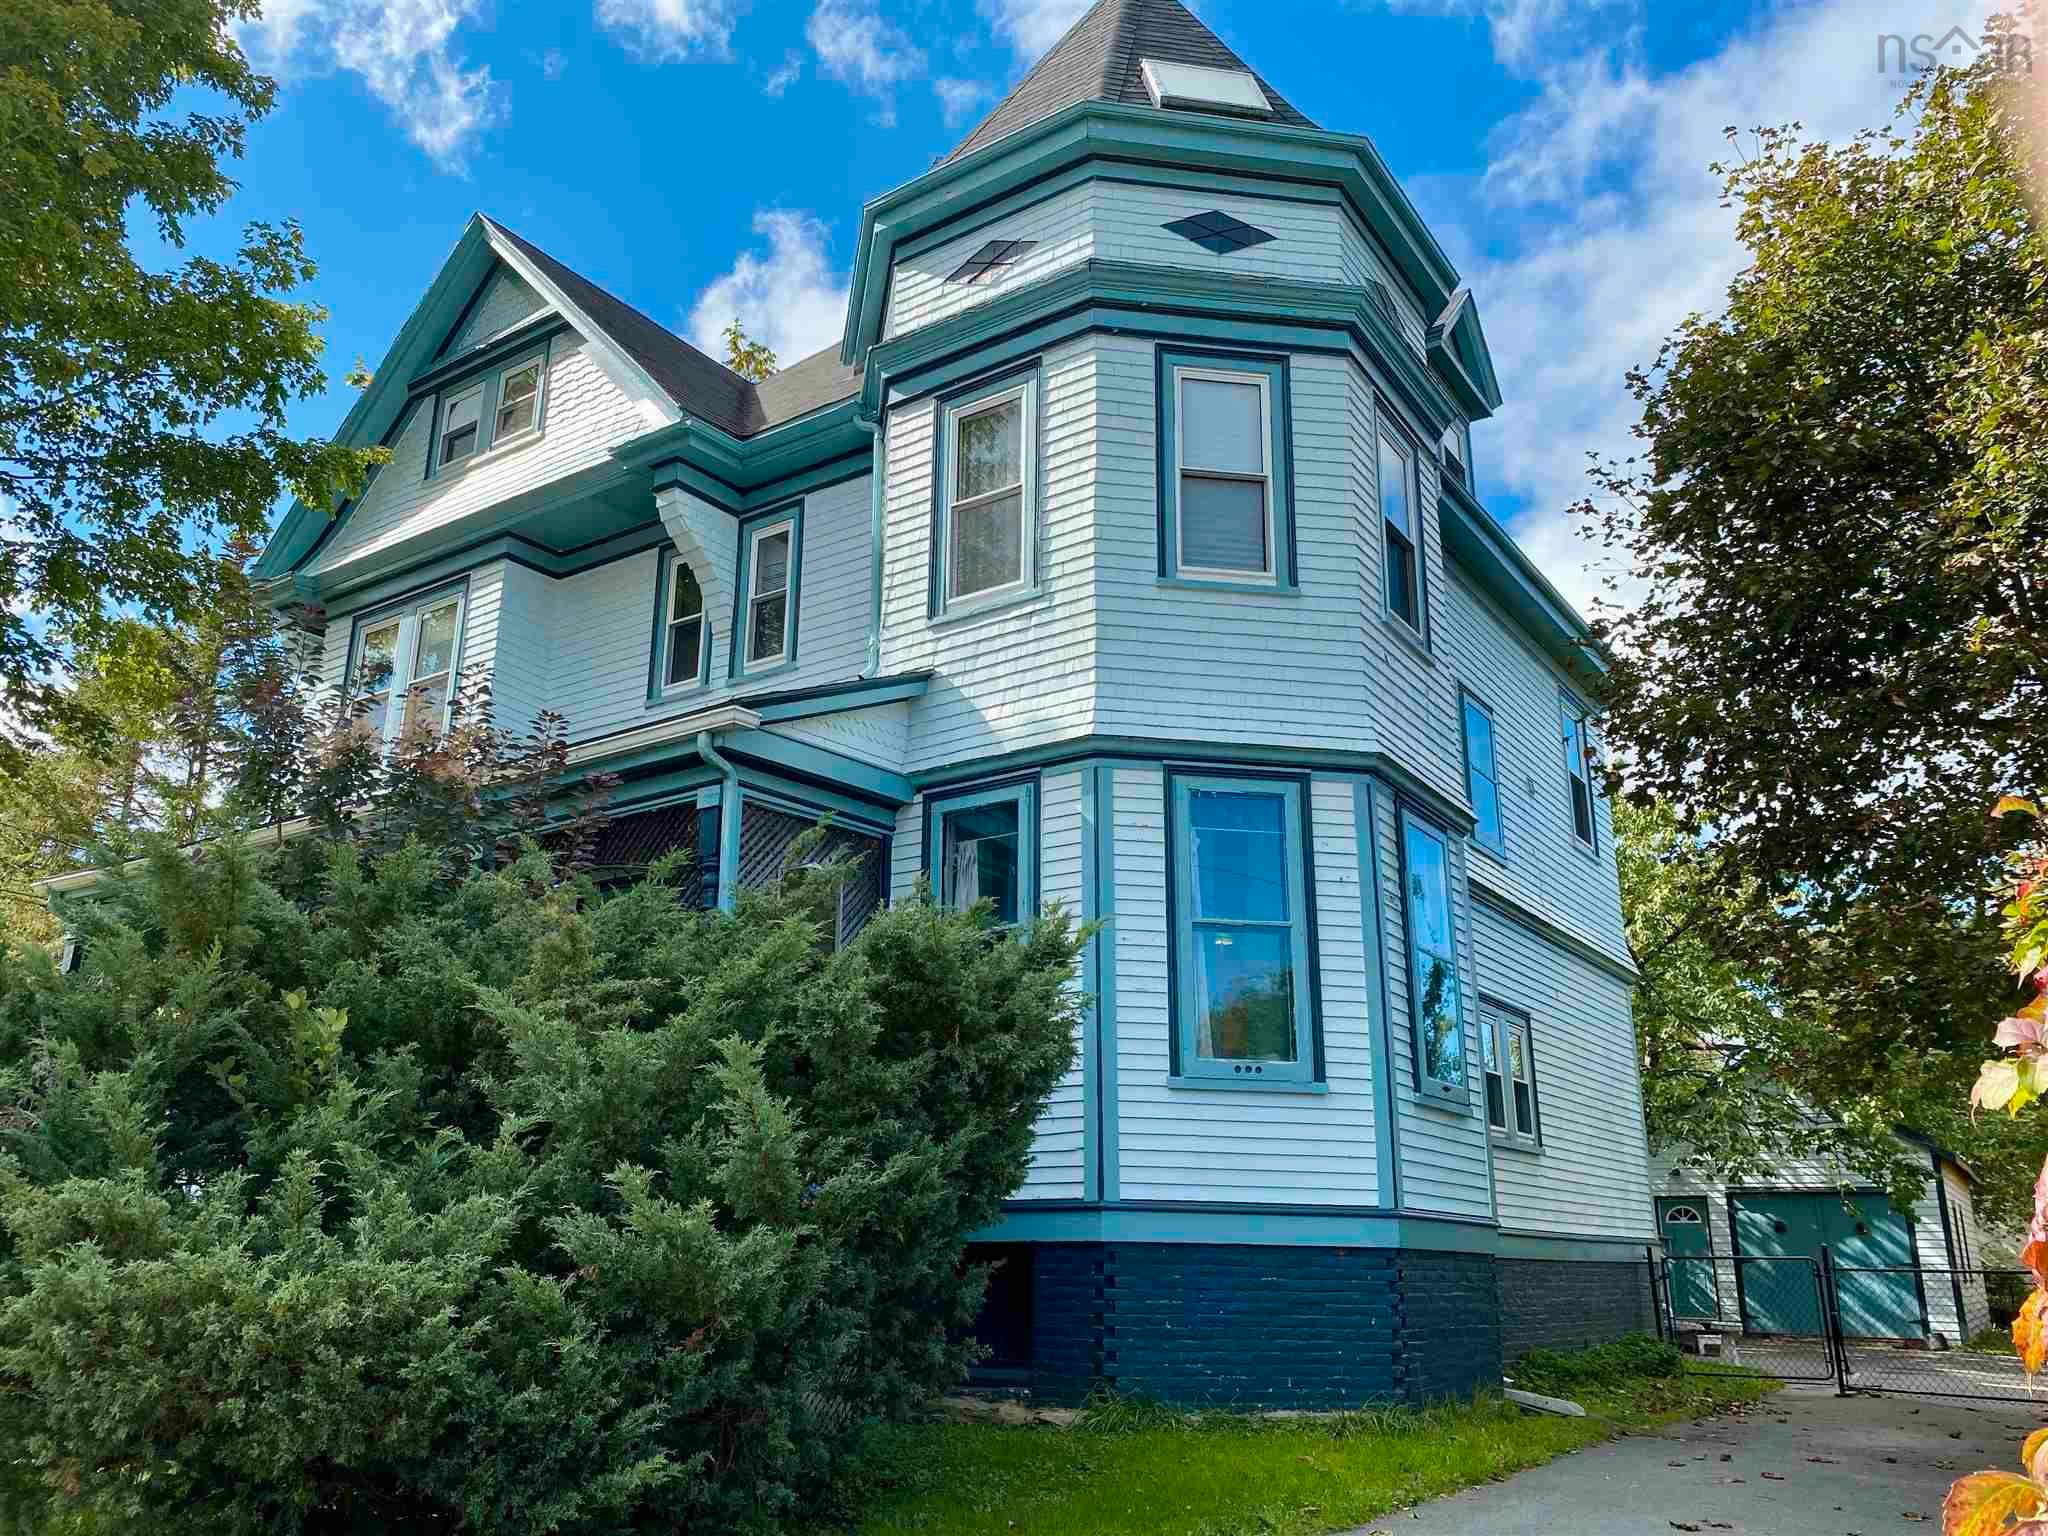 Main Photo: 210 Gray Street in Windsor: 403-Hants County Residential for sale (Annapolis Valley)  : MLS®# 202124964